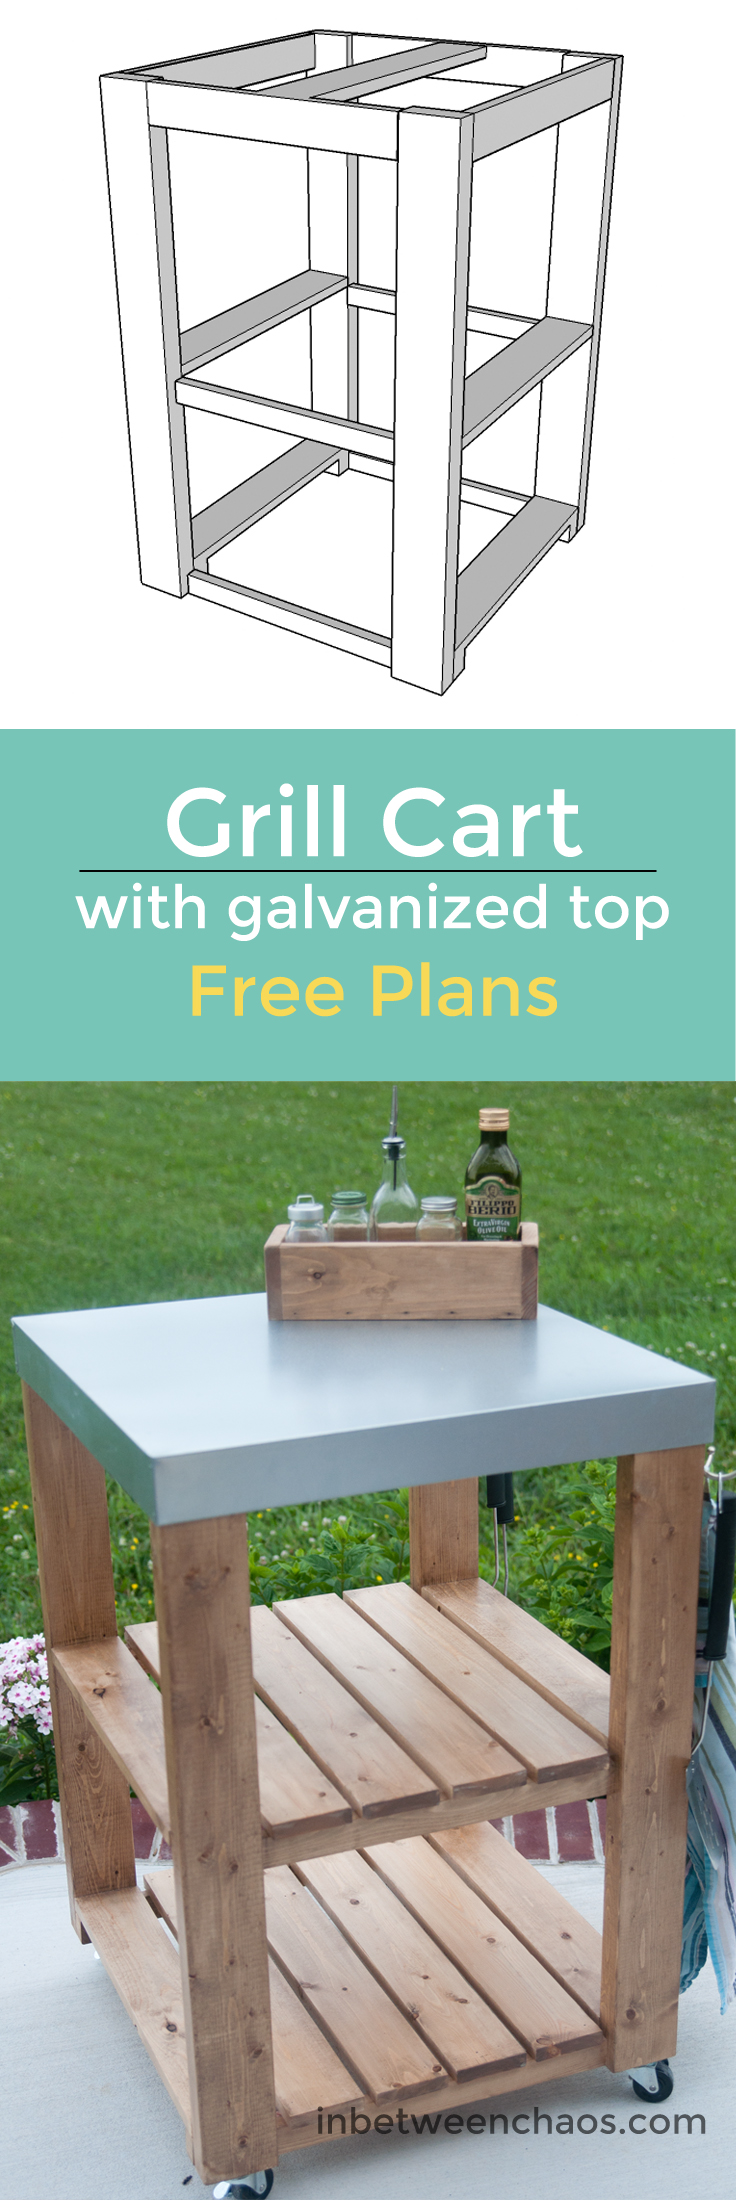 Free Woodworking Plans for a Kitchen or Grill Cart with Galvanized top | inbetweenchaos.com